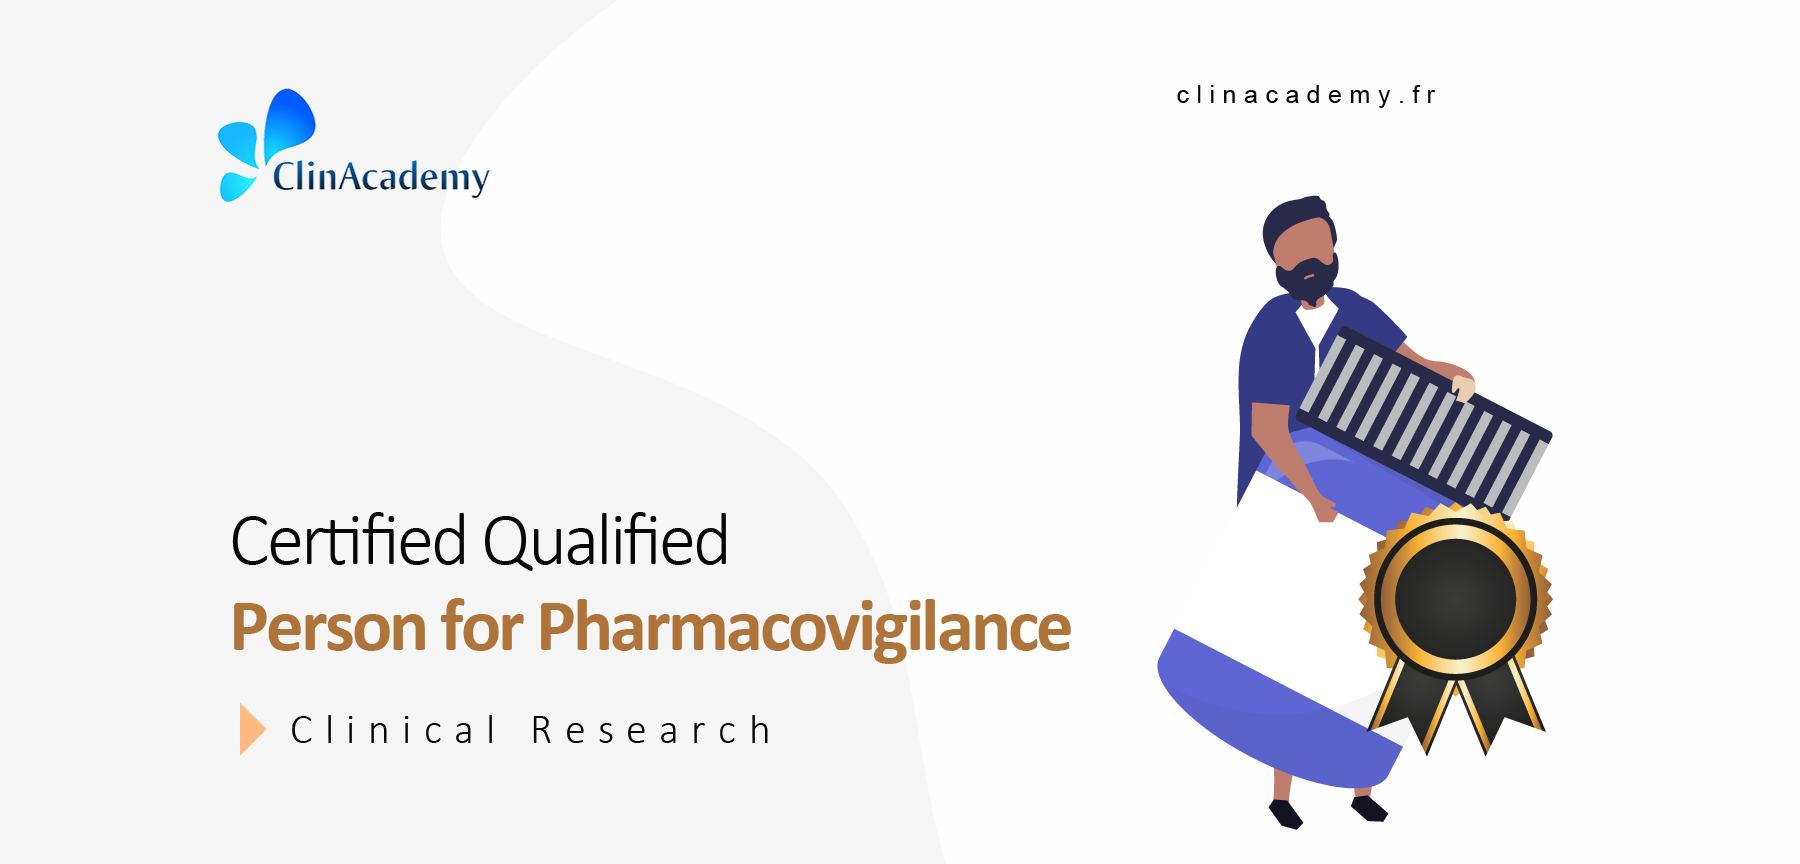 Certified Qualified Person for Pharmacovigilance